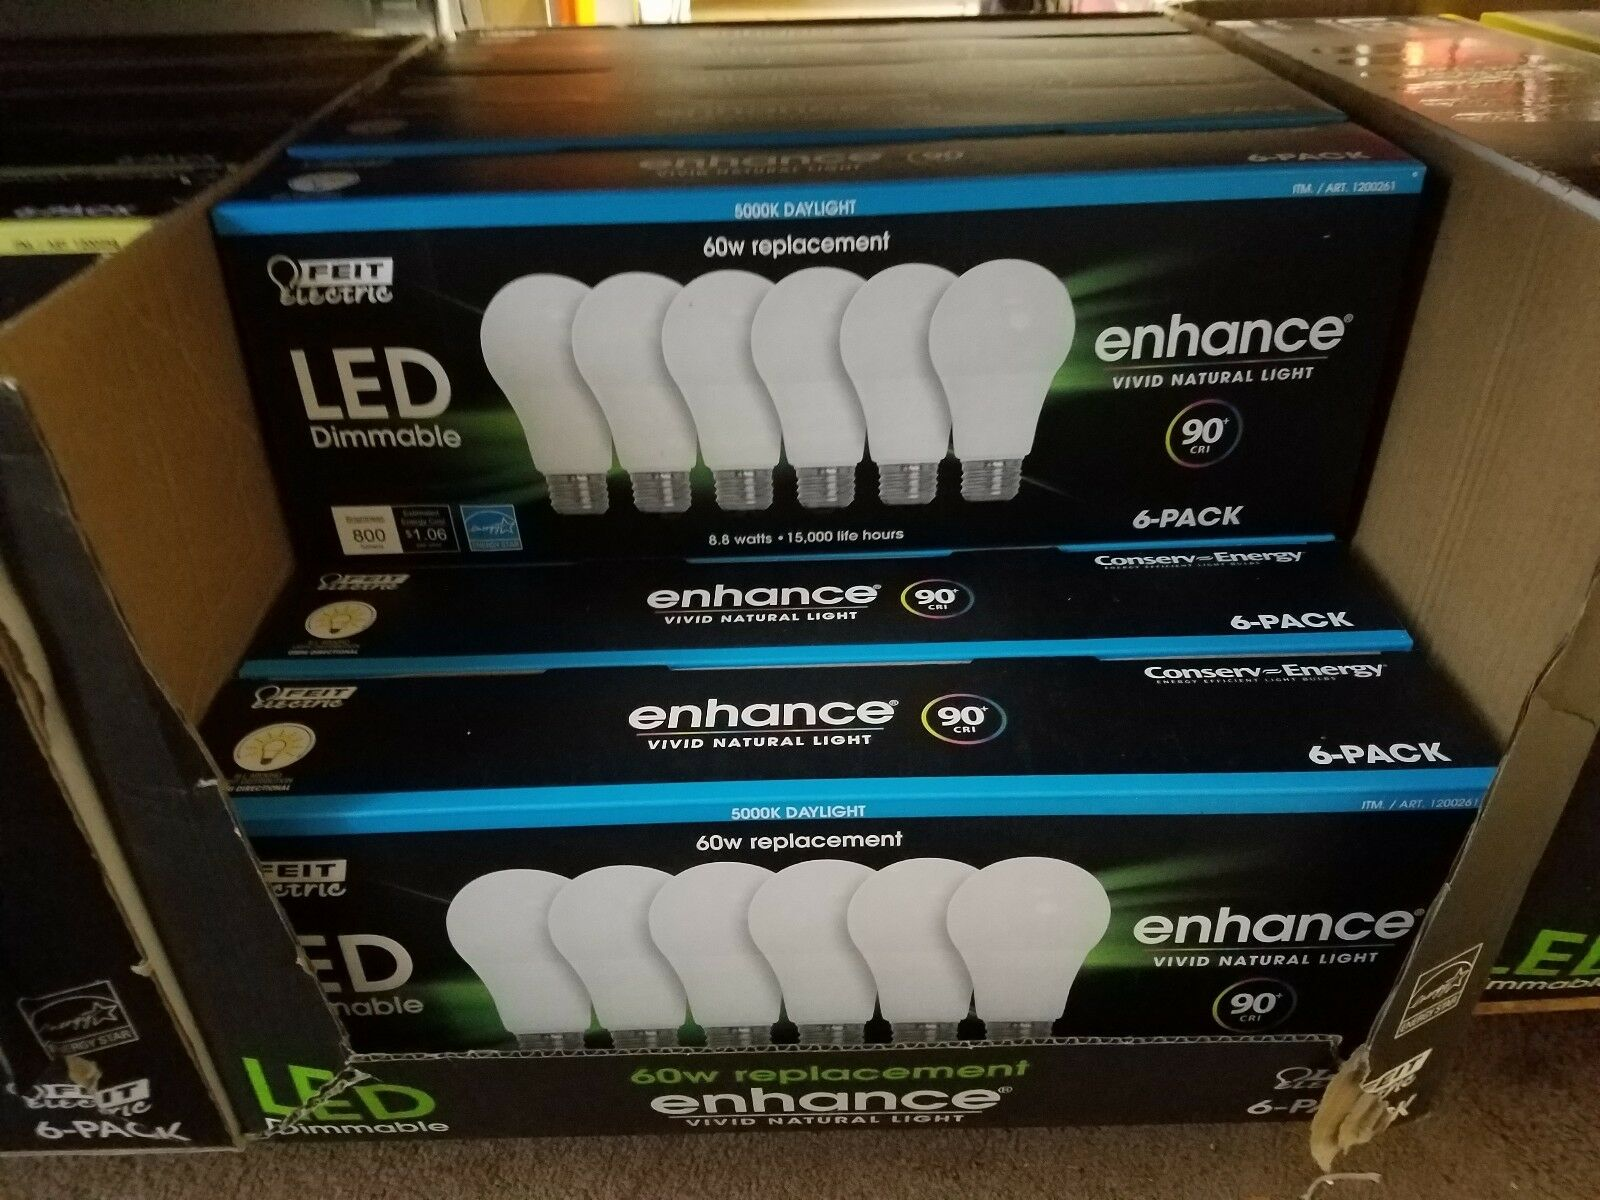 6X LED DAYLIGHT 60W Dimmable Bulbs FEIT ELECTRIC 800 Lumens